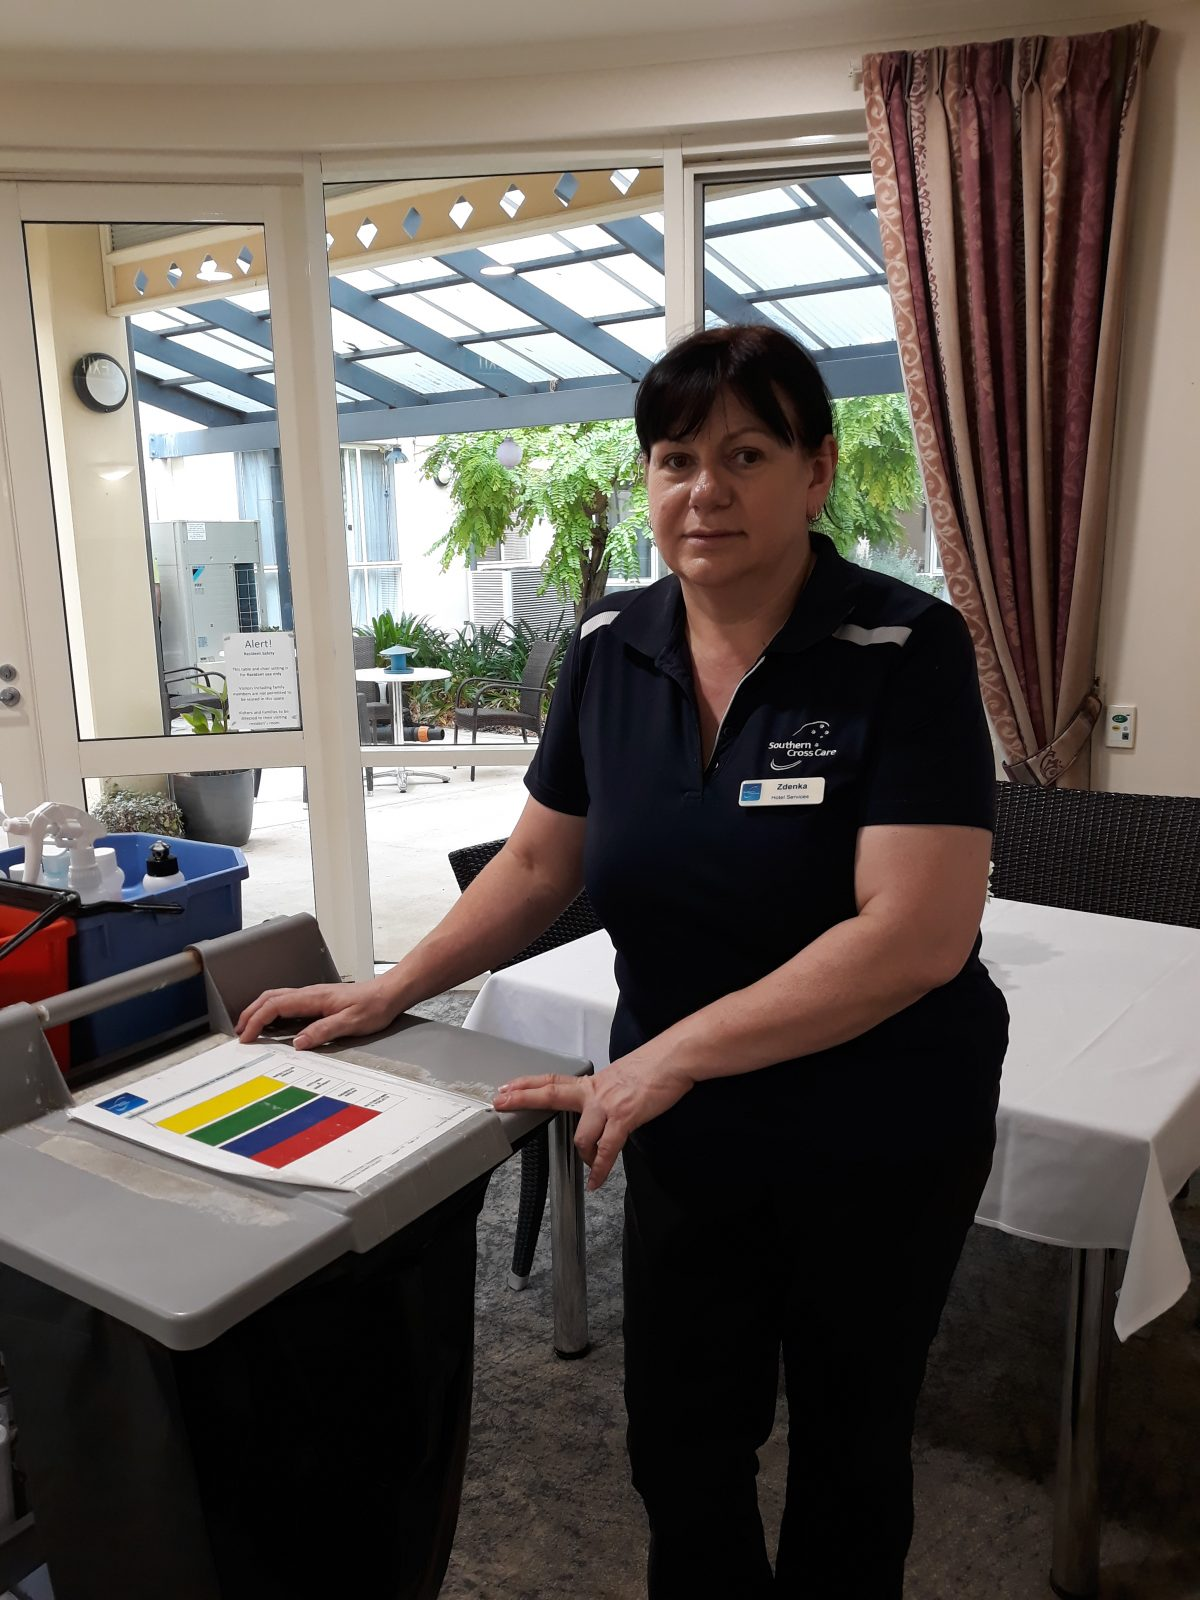 Zdenka Baird, Cleaner, The Pines Lodge Residential Care